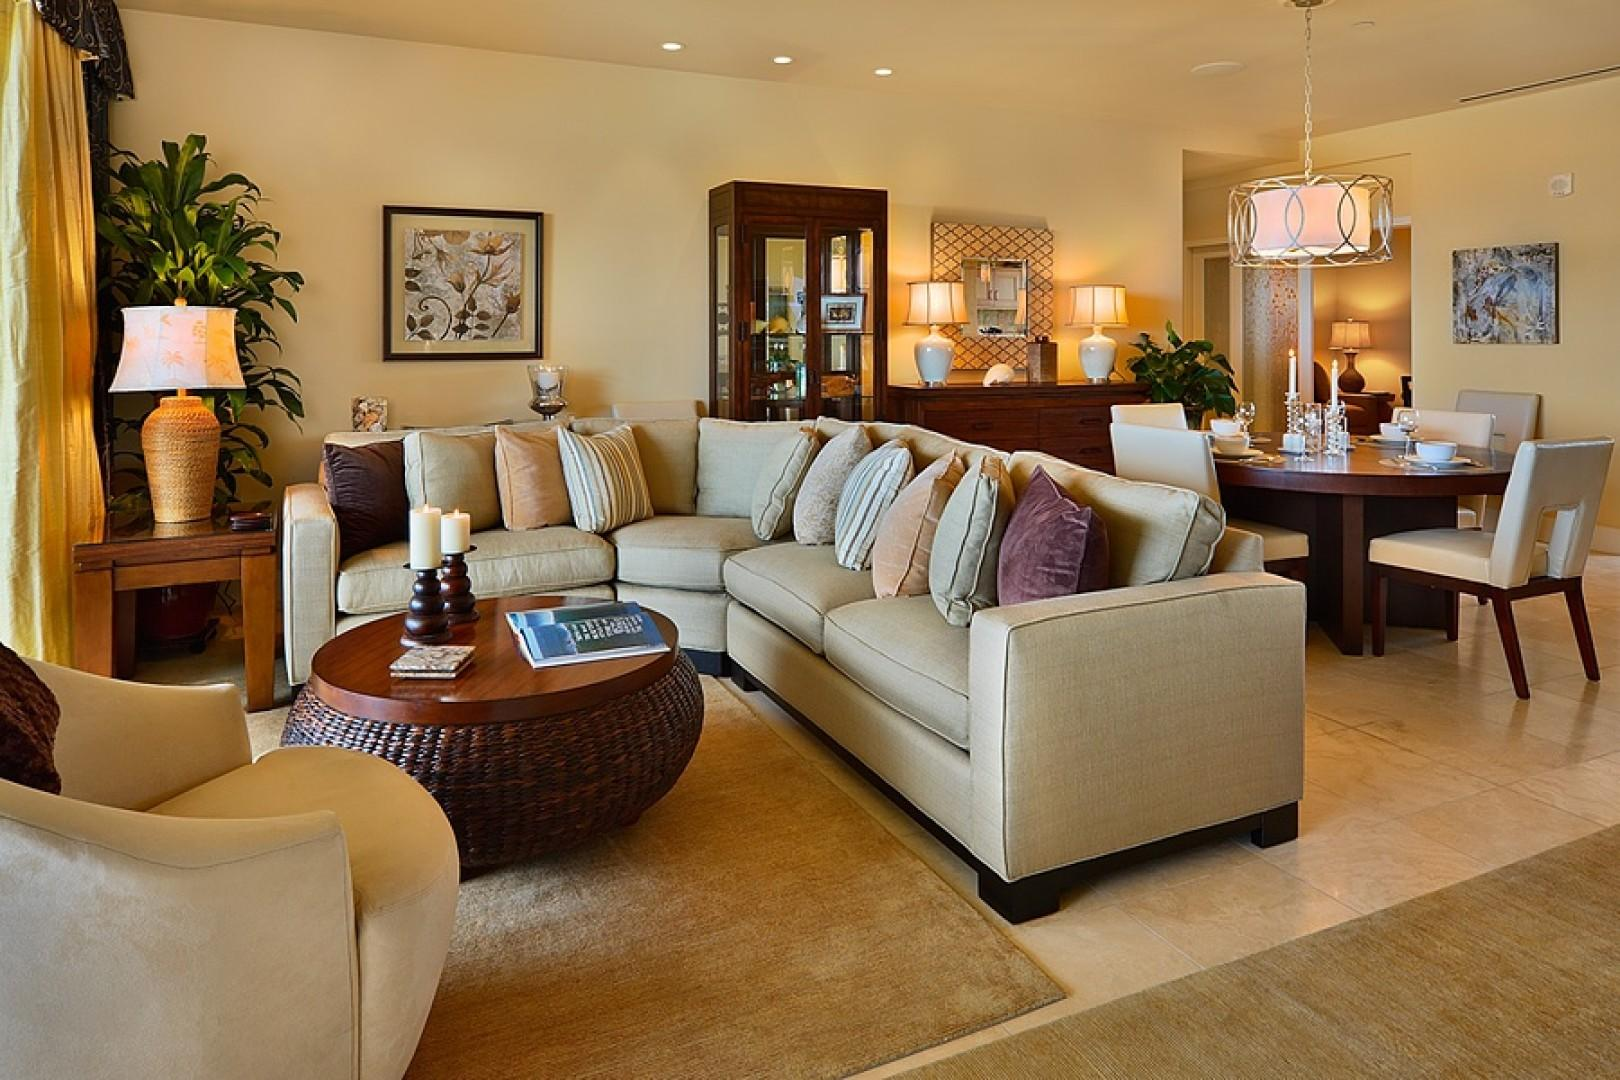 Simply beautiful interior decor - one of two seating/lounging areas in Sandy Surf K508 Villa